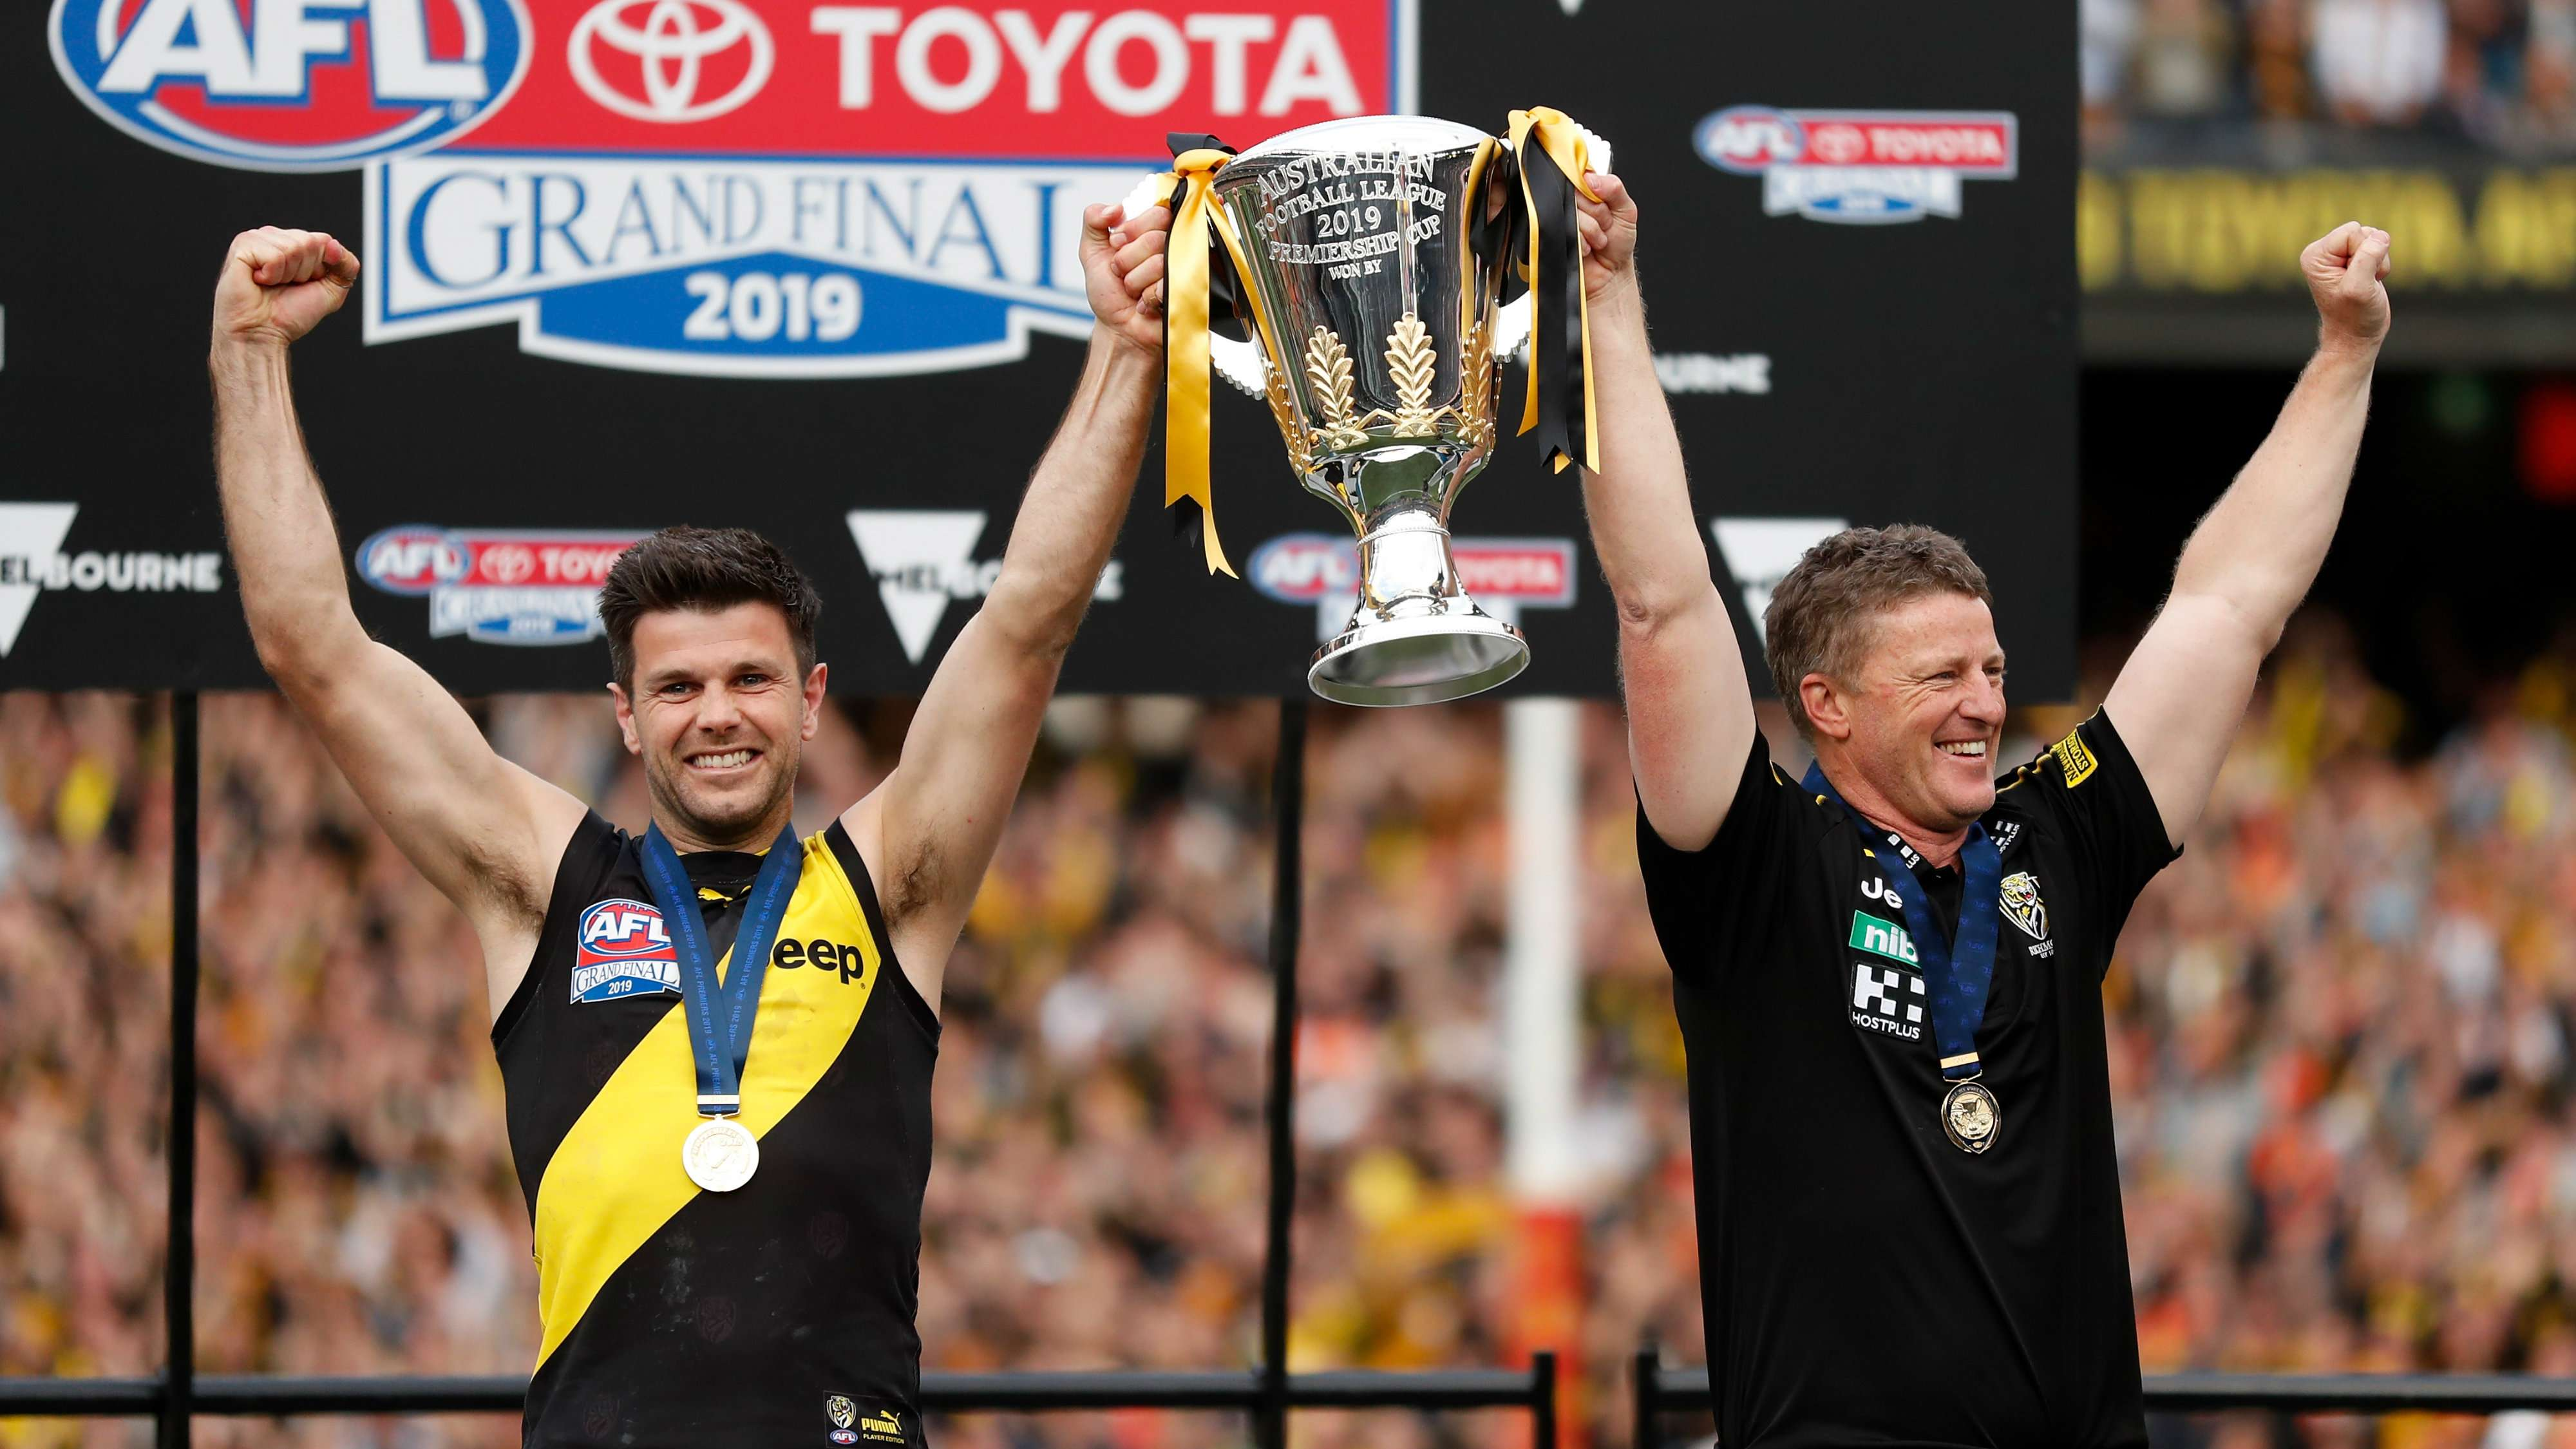 Afl grand final betting preview paypal betting sites uk basketball